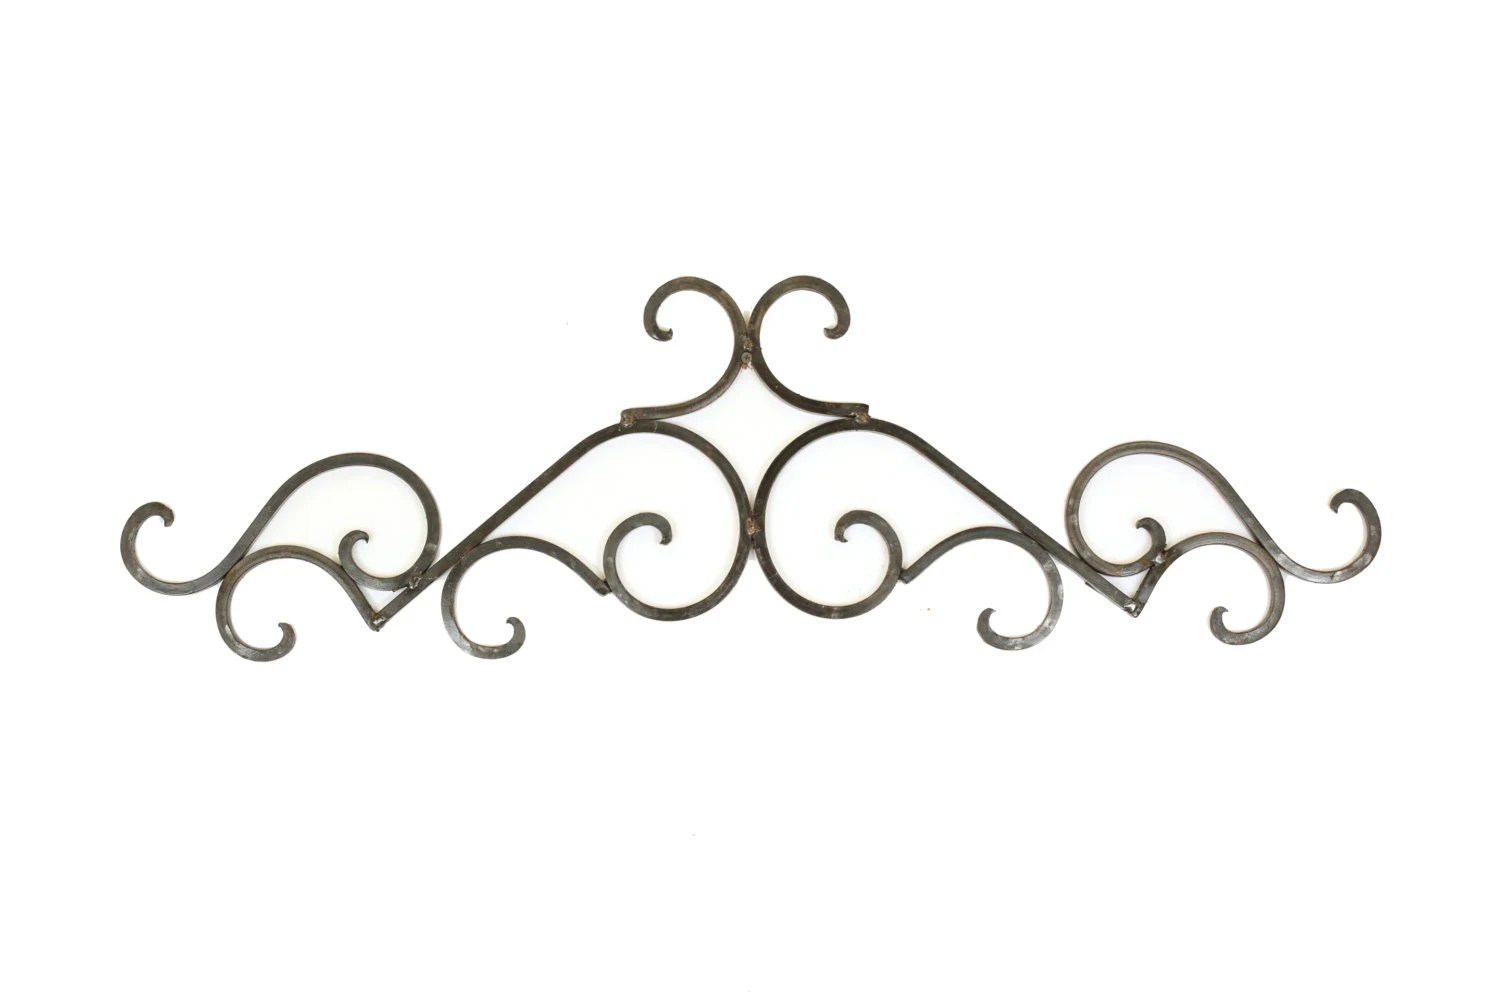 Taos Iron Door Topper-Architectural Wall Garden-38x11-Wrought